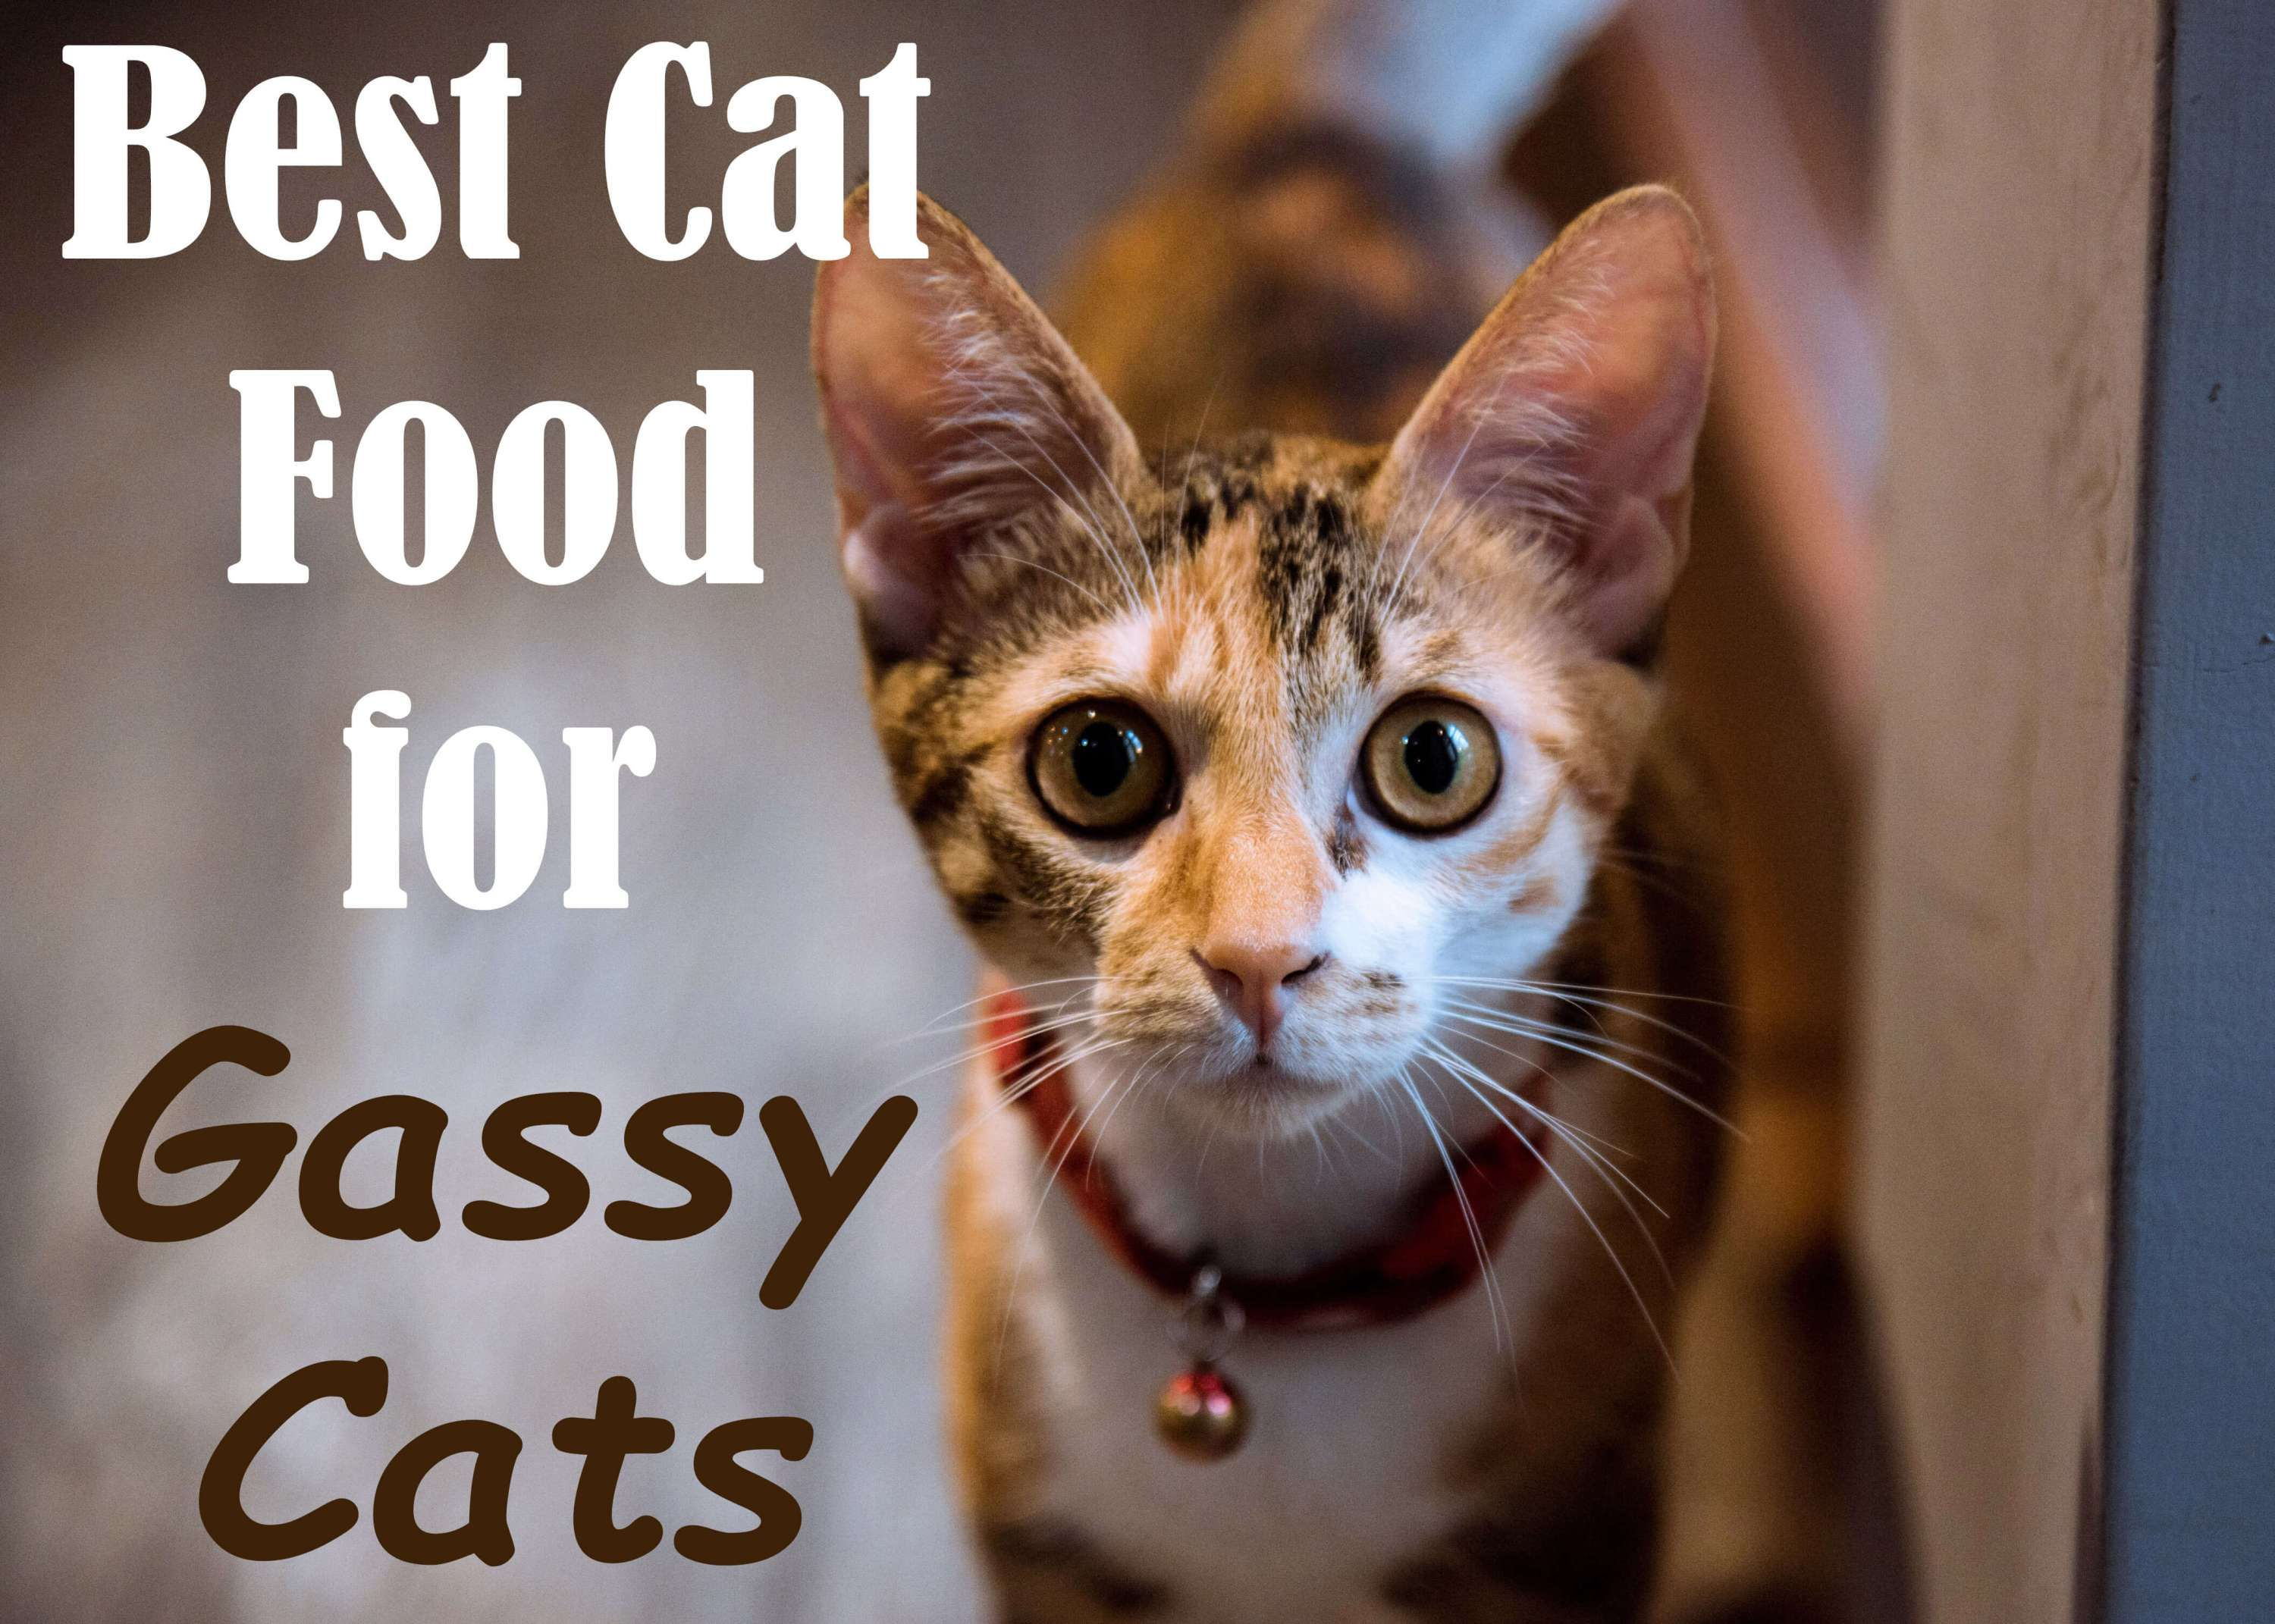 6 Best Cat Foods For Gassy Cats Review Causes Treatment 2020 With Images Cat Food Best Cat Food Cats